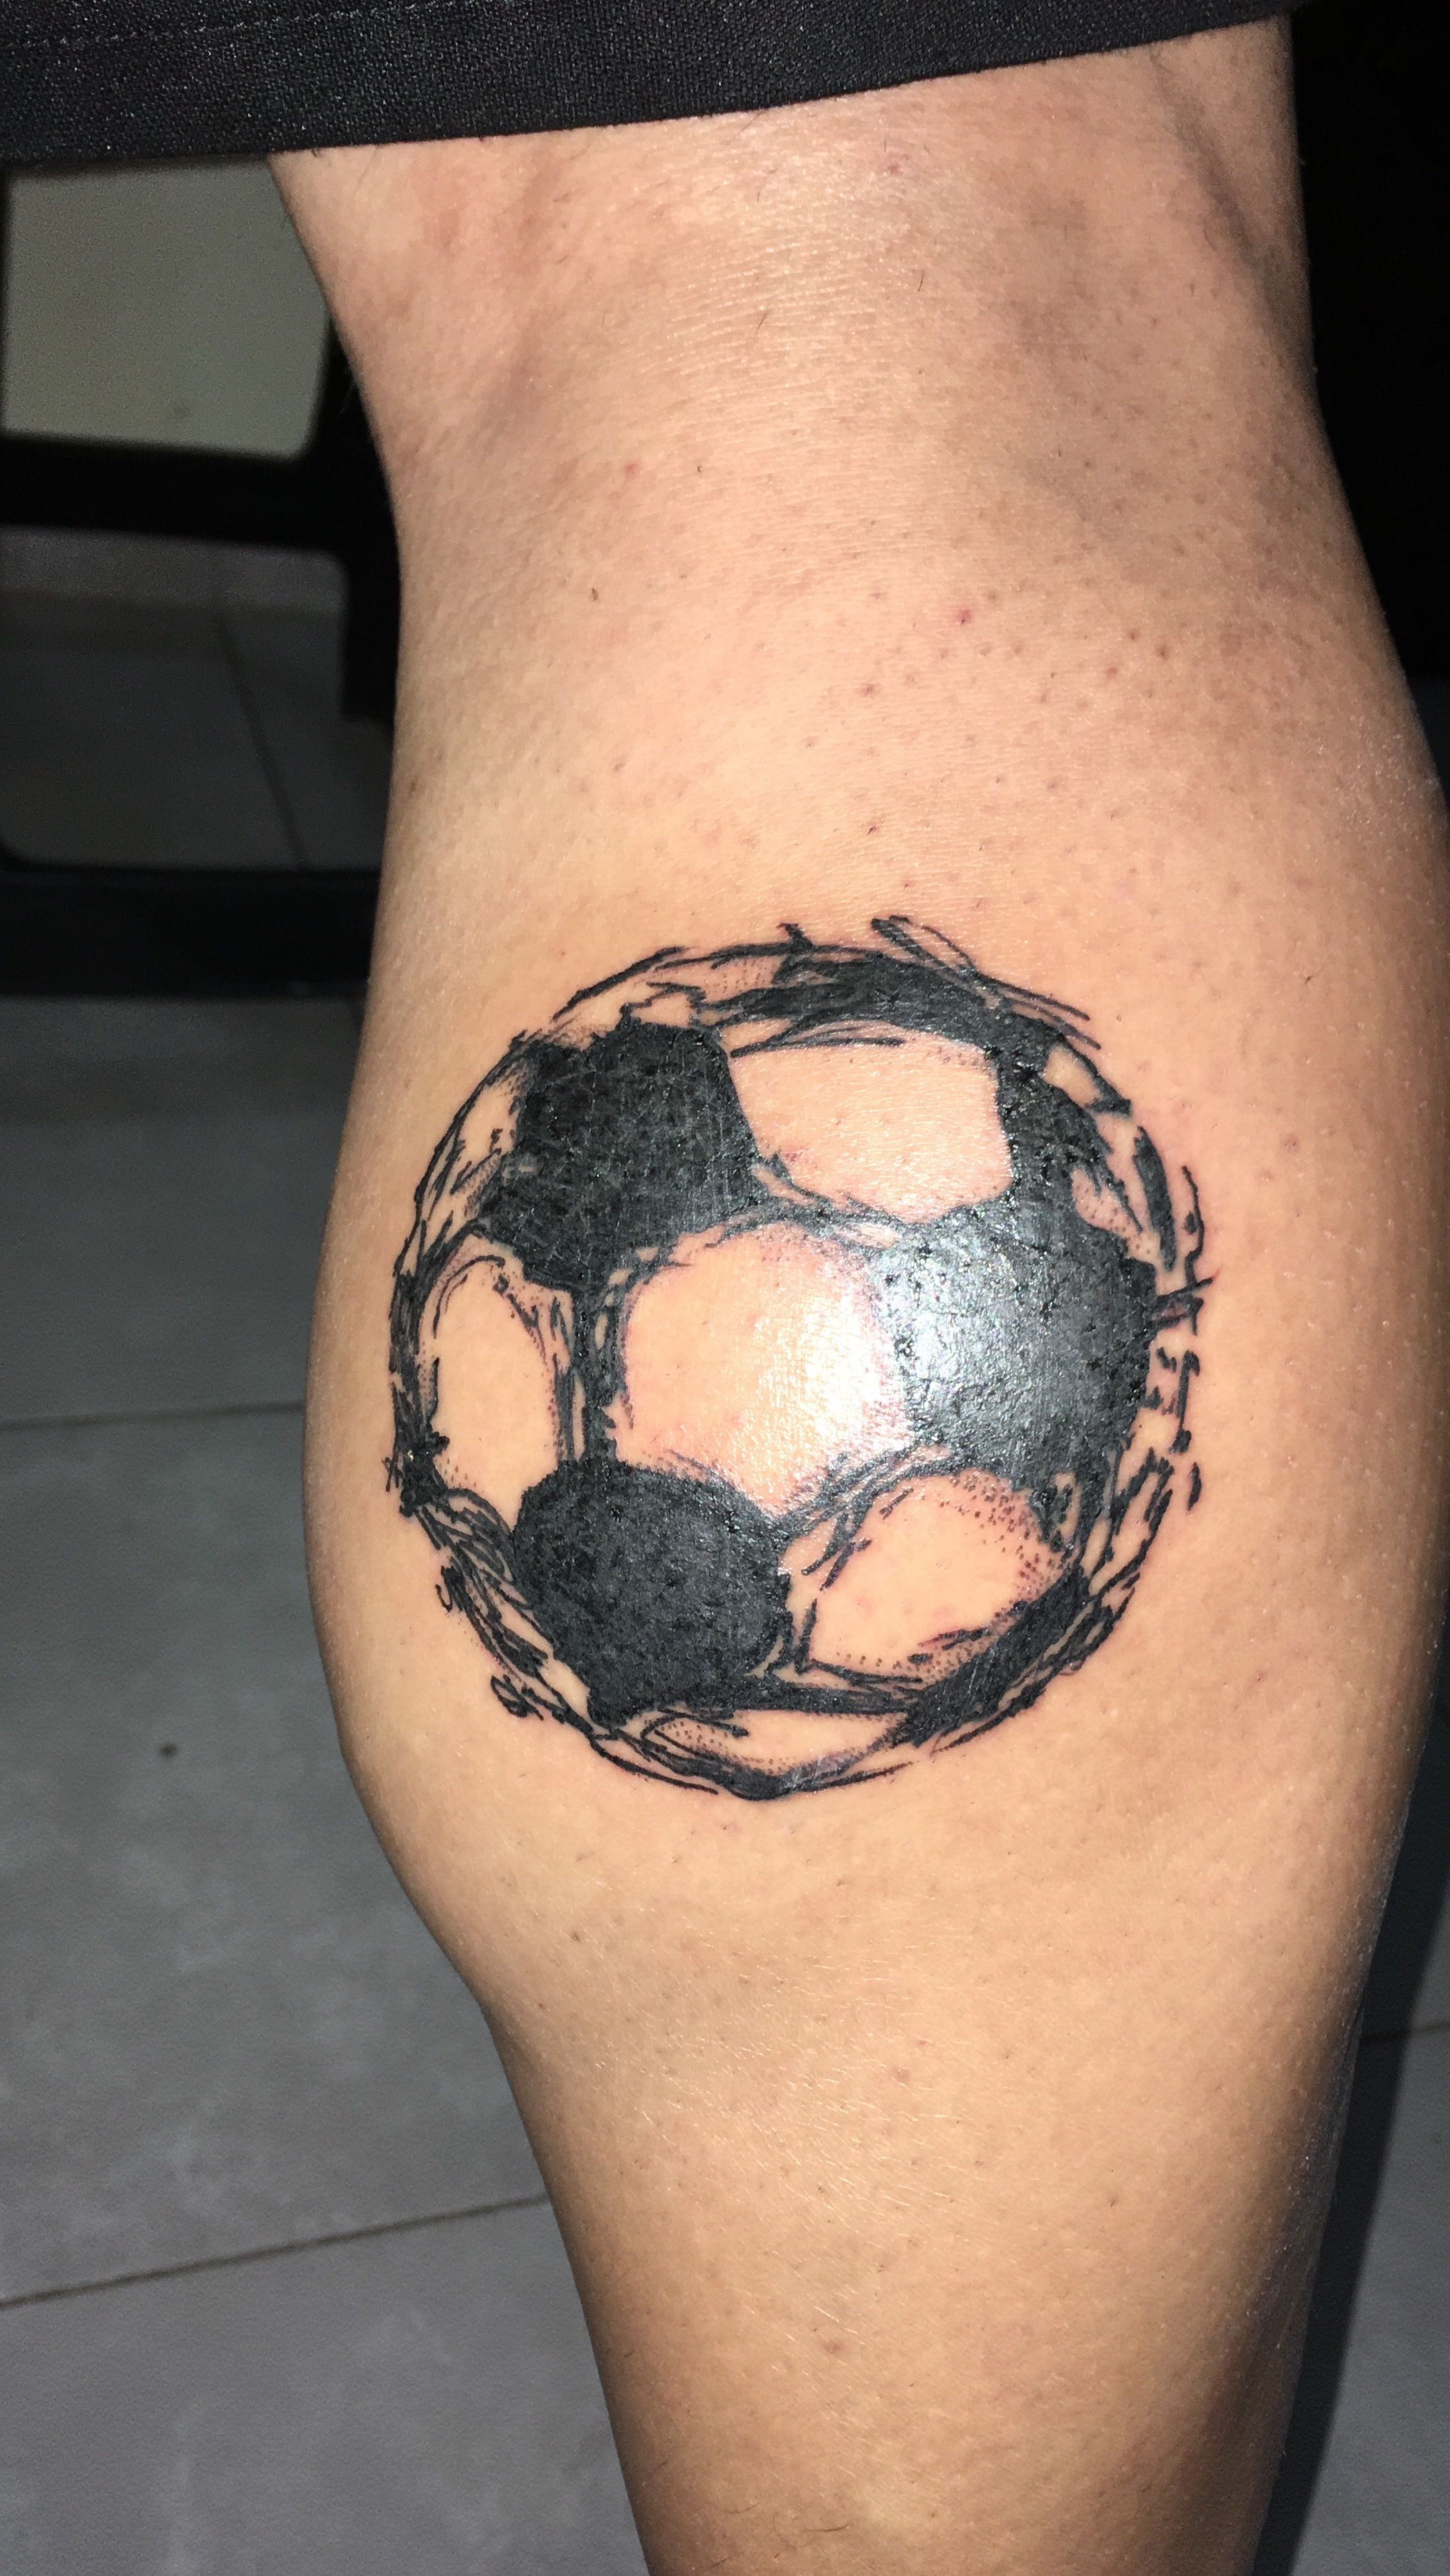 Tatoo Pelota Fútbol Yo Football Tattoo Soccer Tattoos Y Soccer